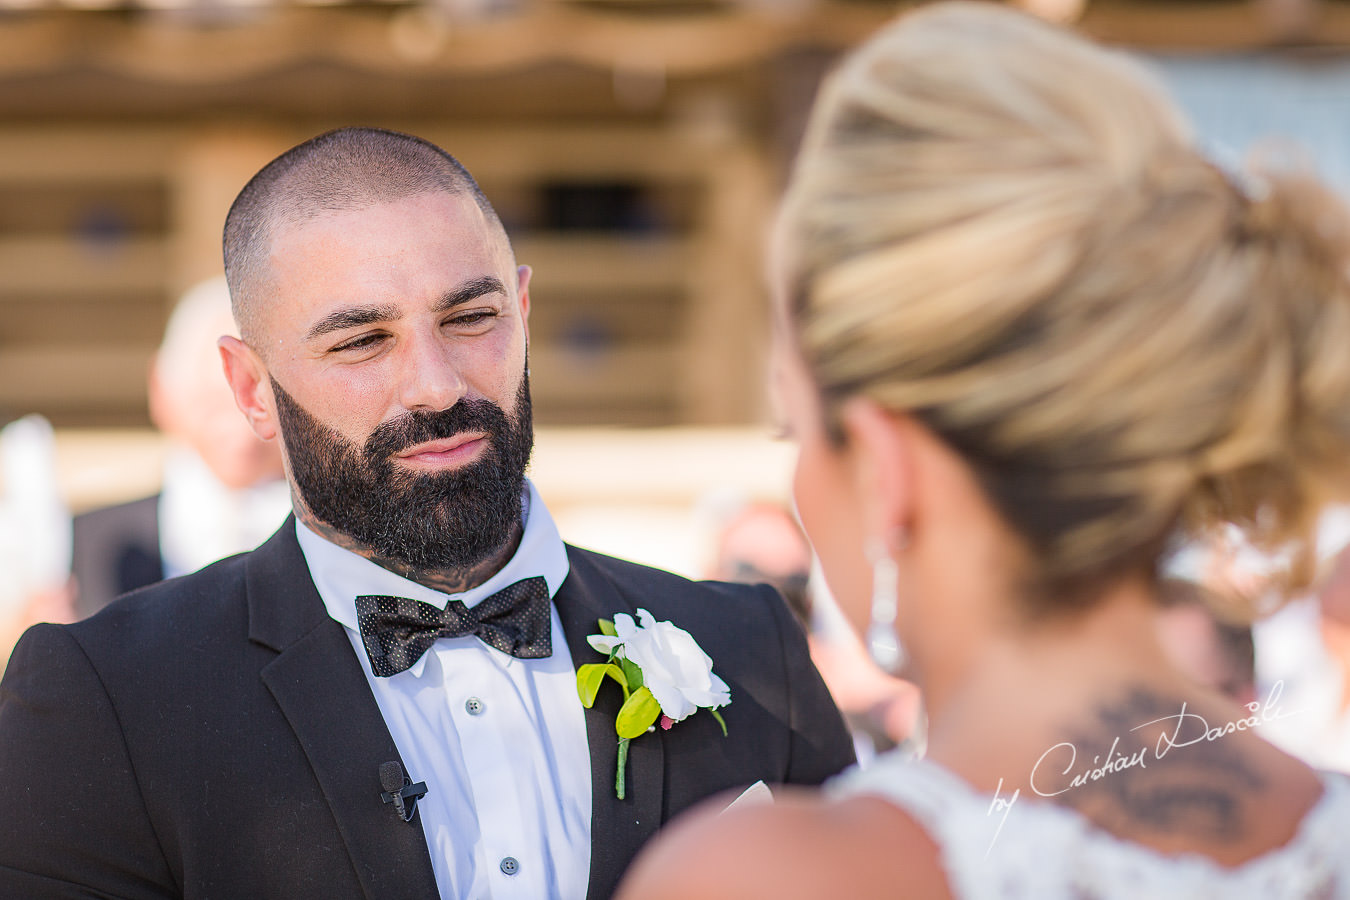 Emotional Wedding at Coral Beach Hotel & Resort. Photography by Cyprus Photographer Cristian Dascalu